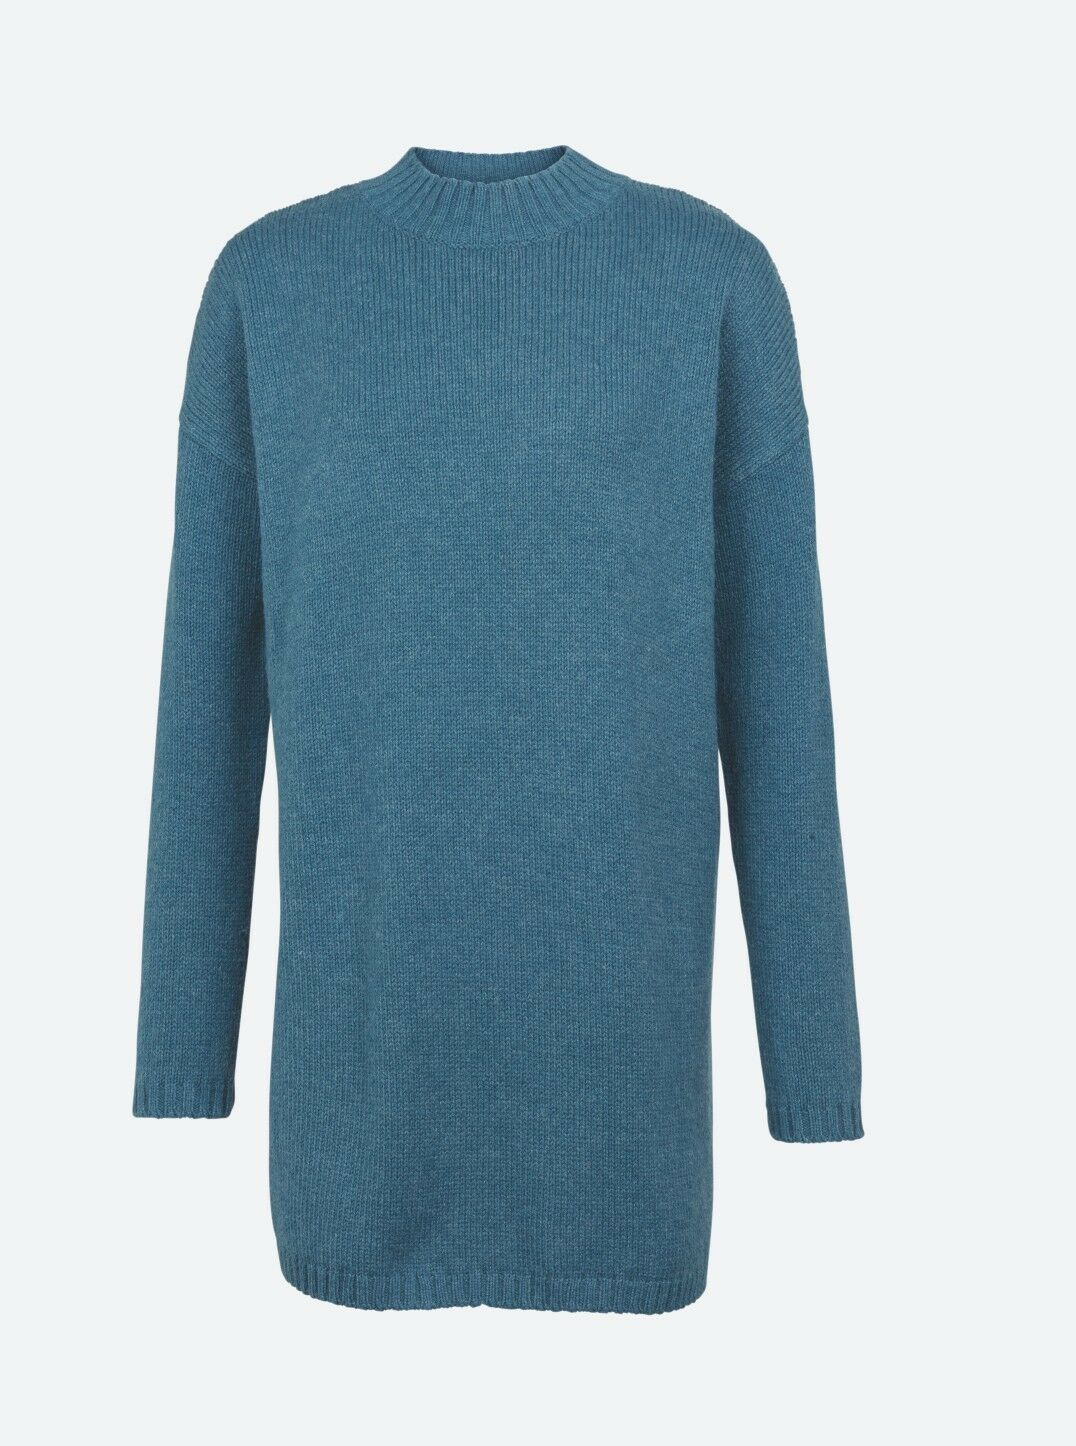 Fat Face - Women's - Sennan Longline Jumper - bluee- 55% Cotton - BNWT